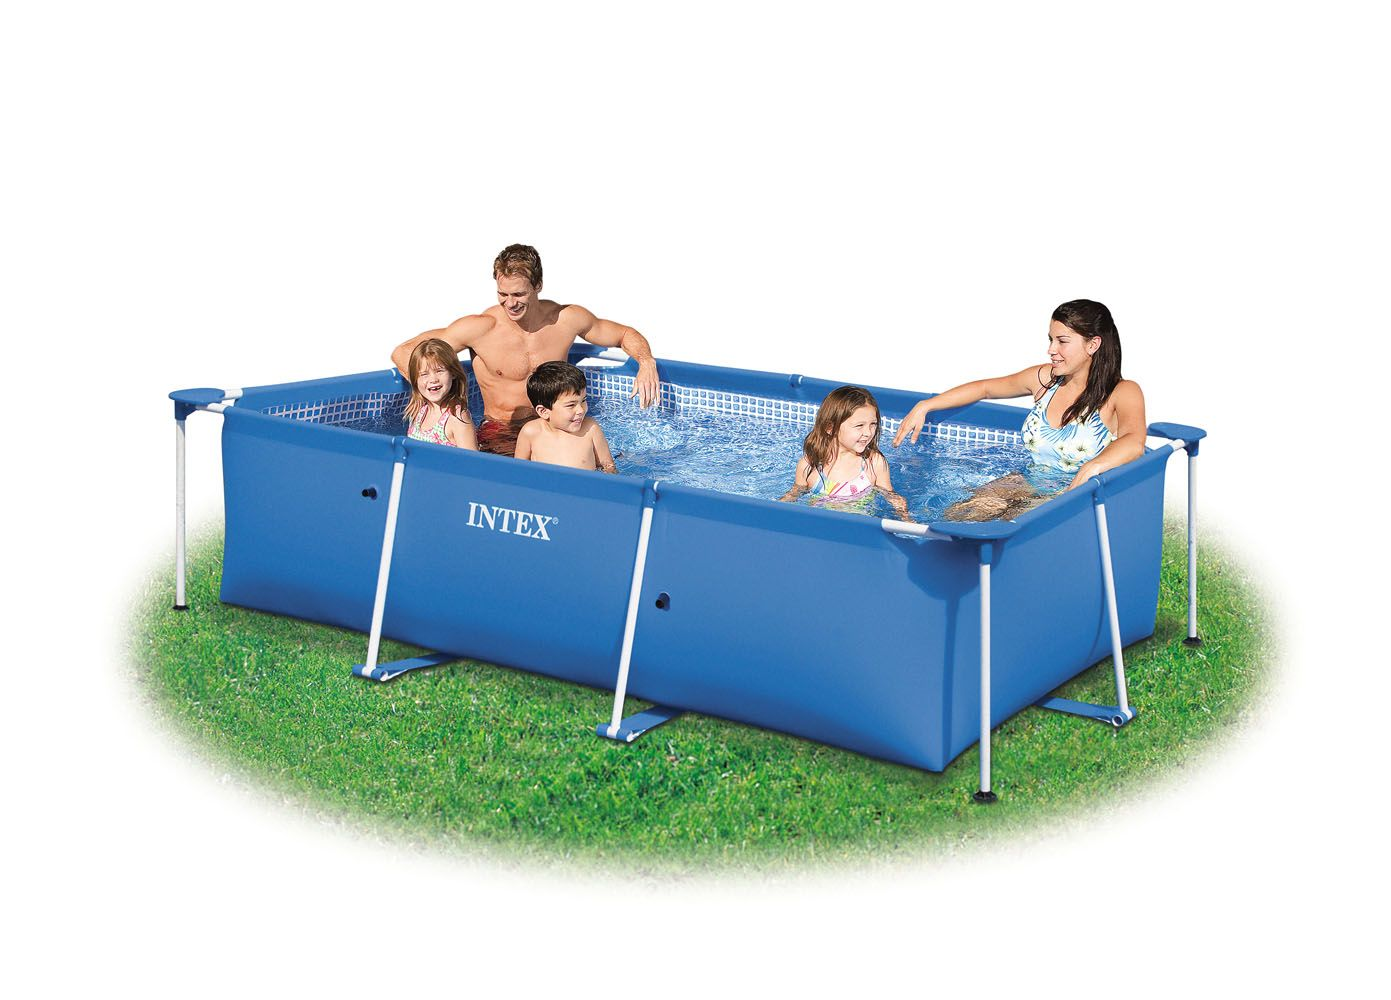 Piscine rectangulaire hors sol intex intex for Piscine demontable intex